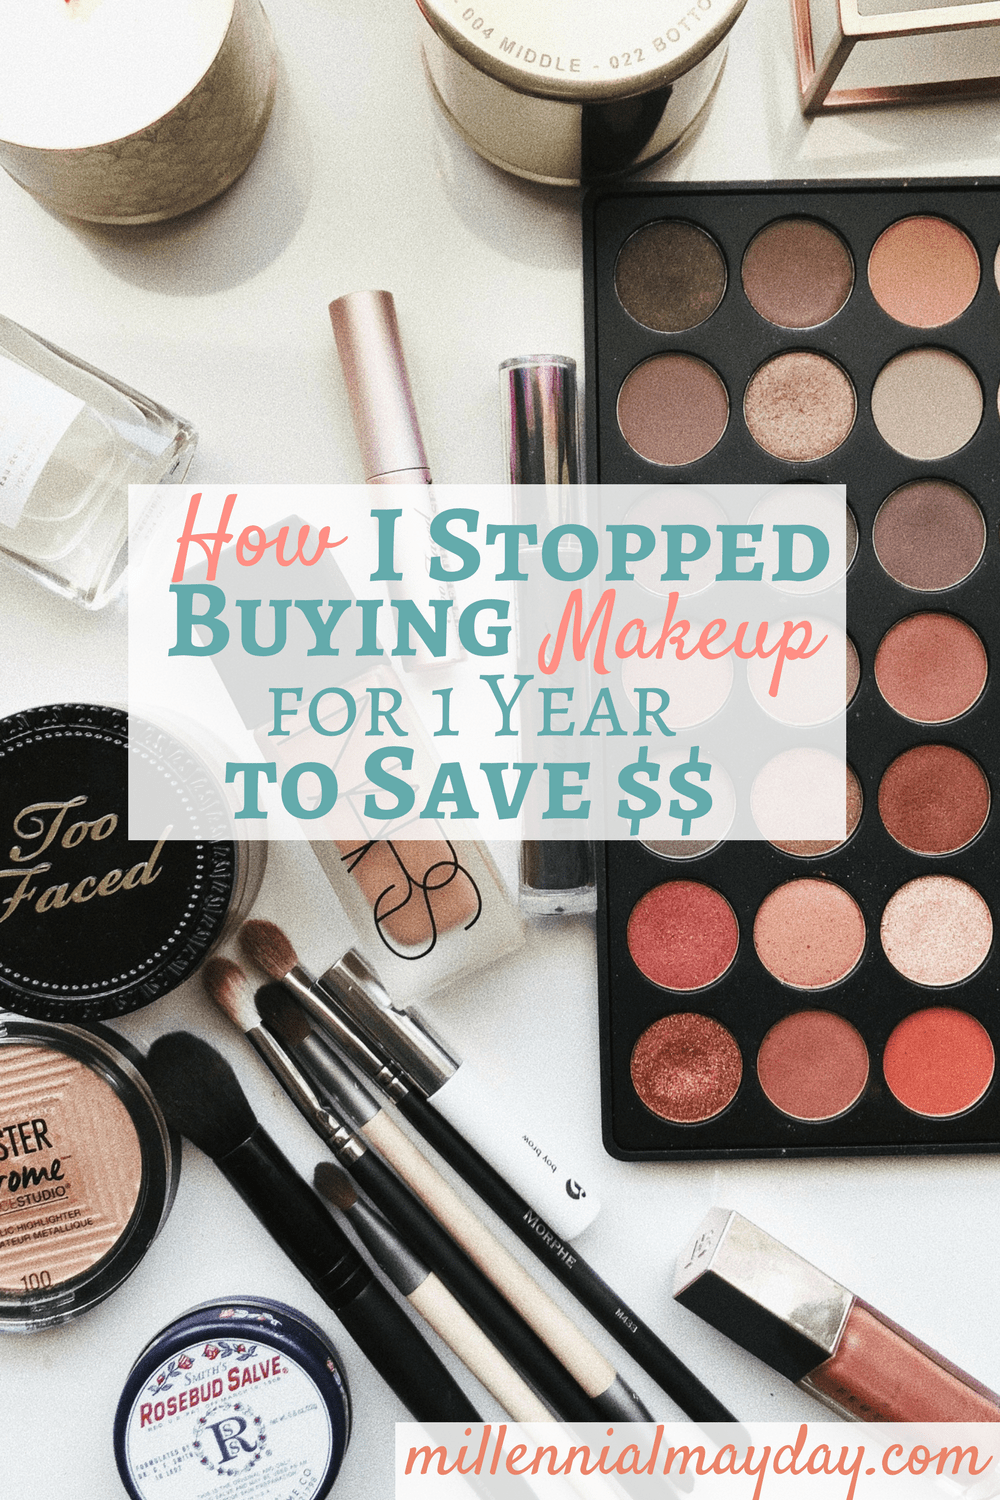 How much money does the average women spend on cosmetics every year?